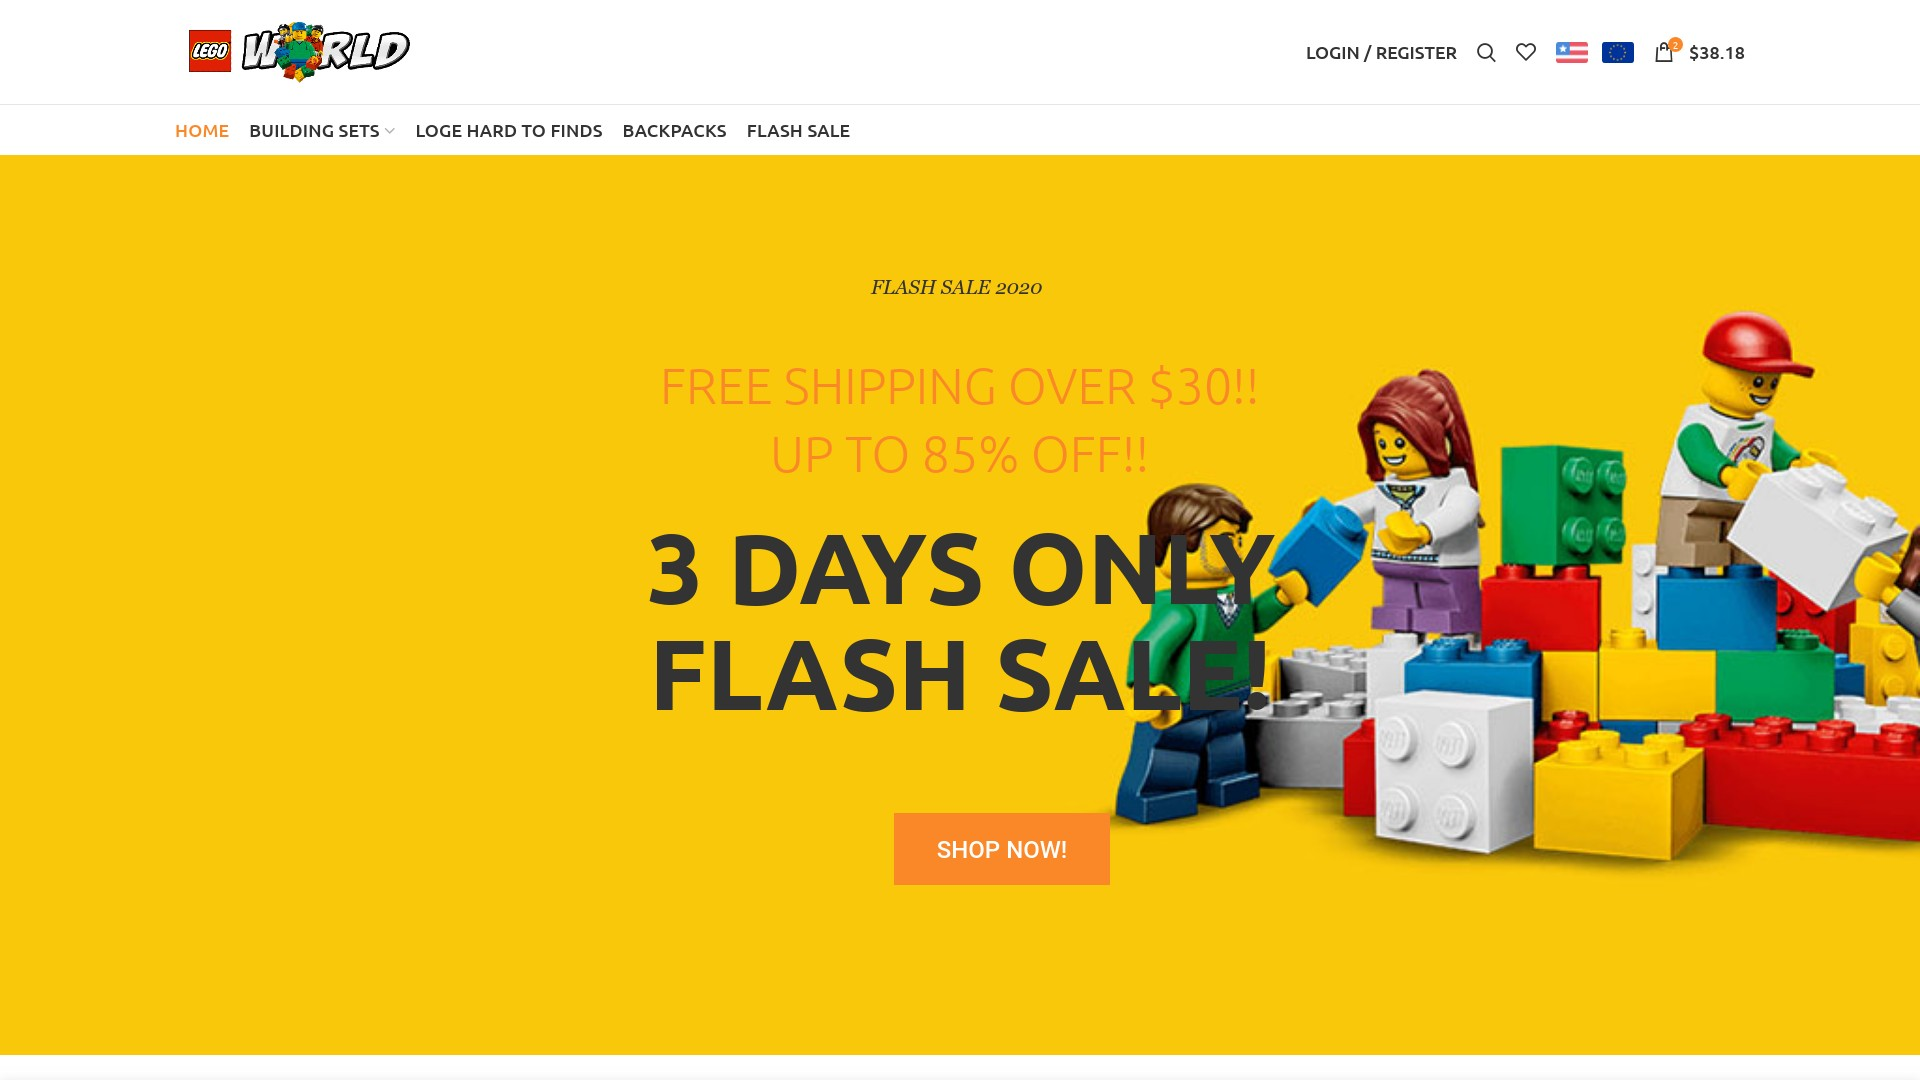 Is Lego Mall Shop a Scam? See the Review of the Online Store